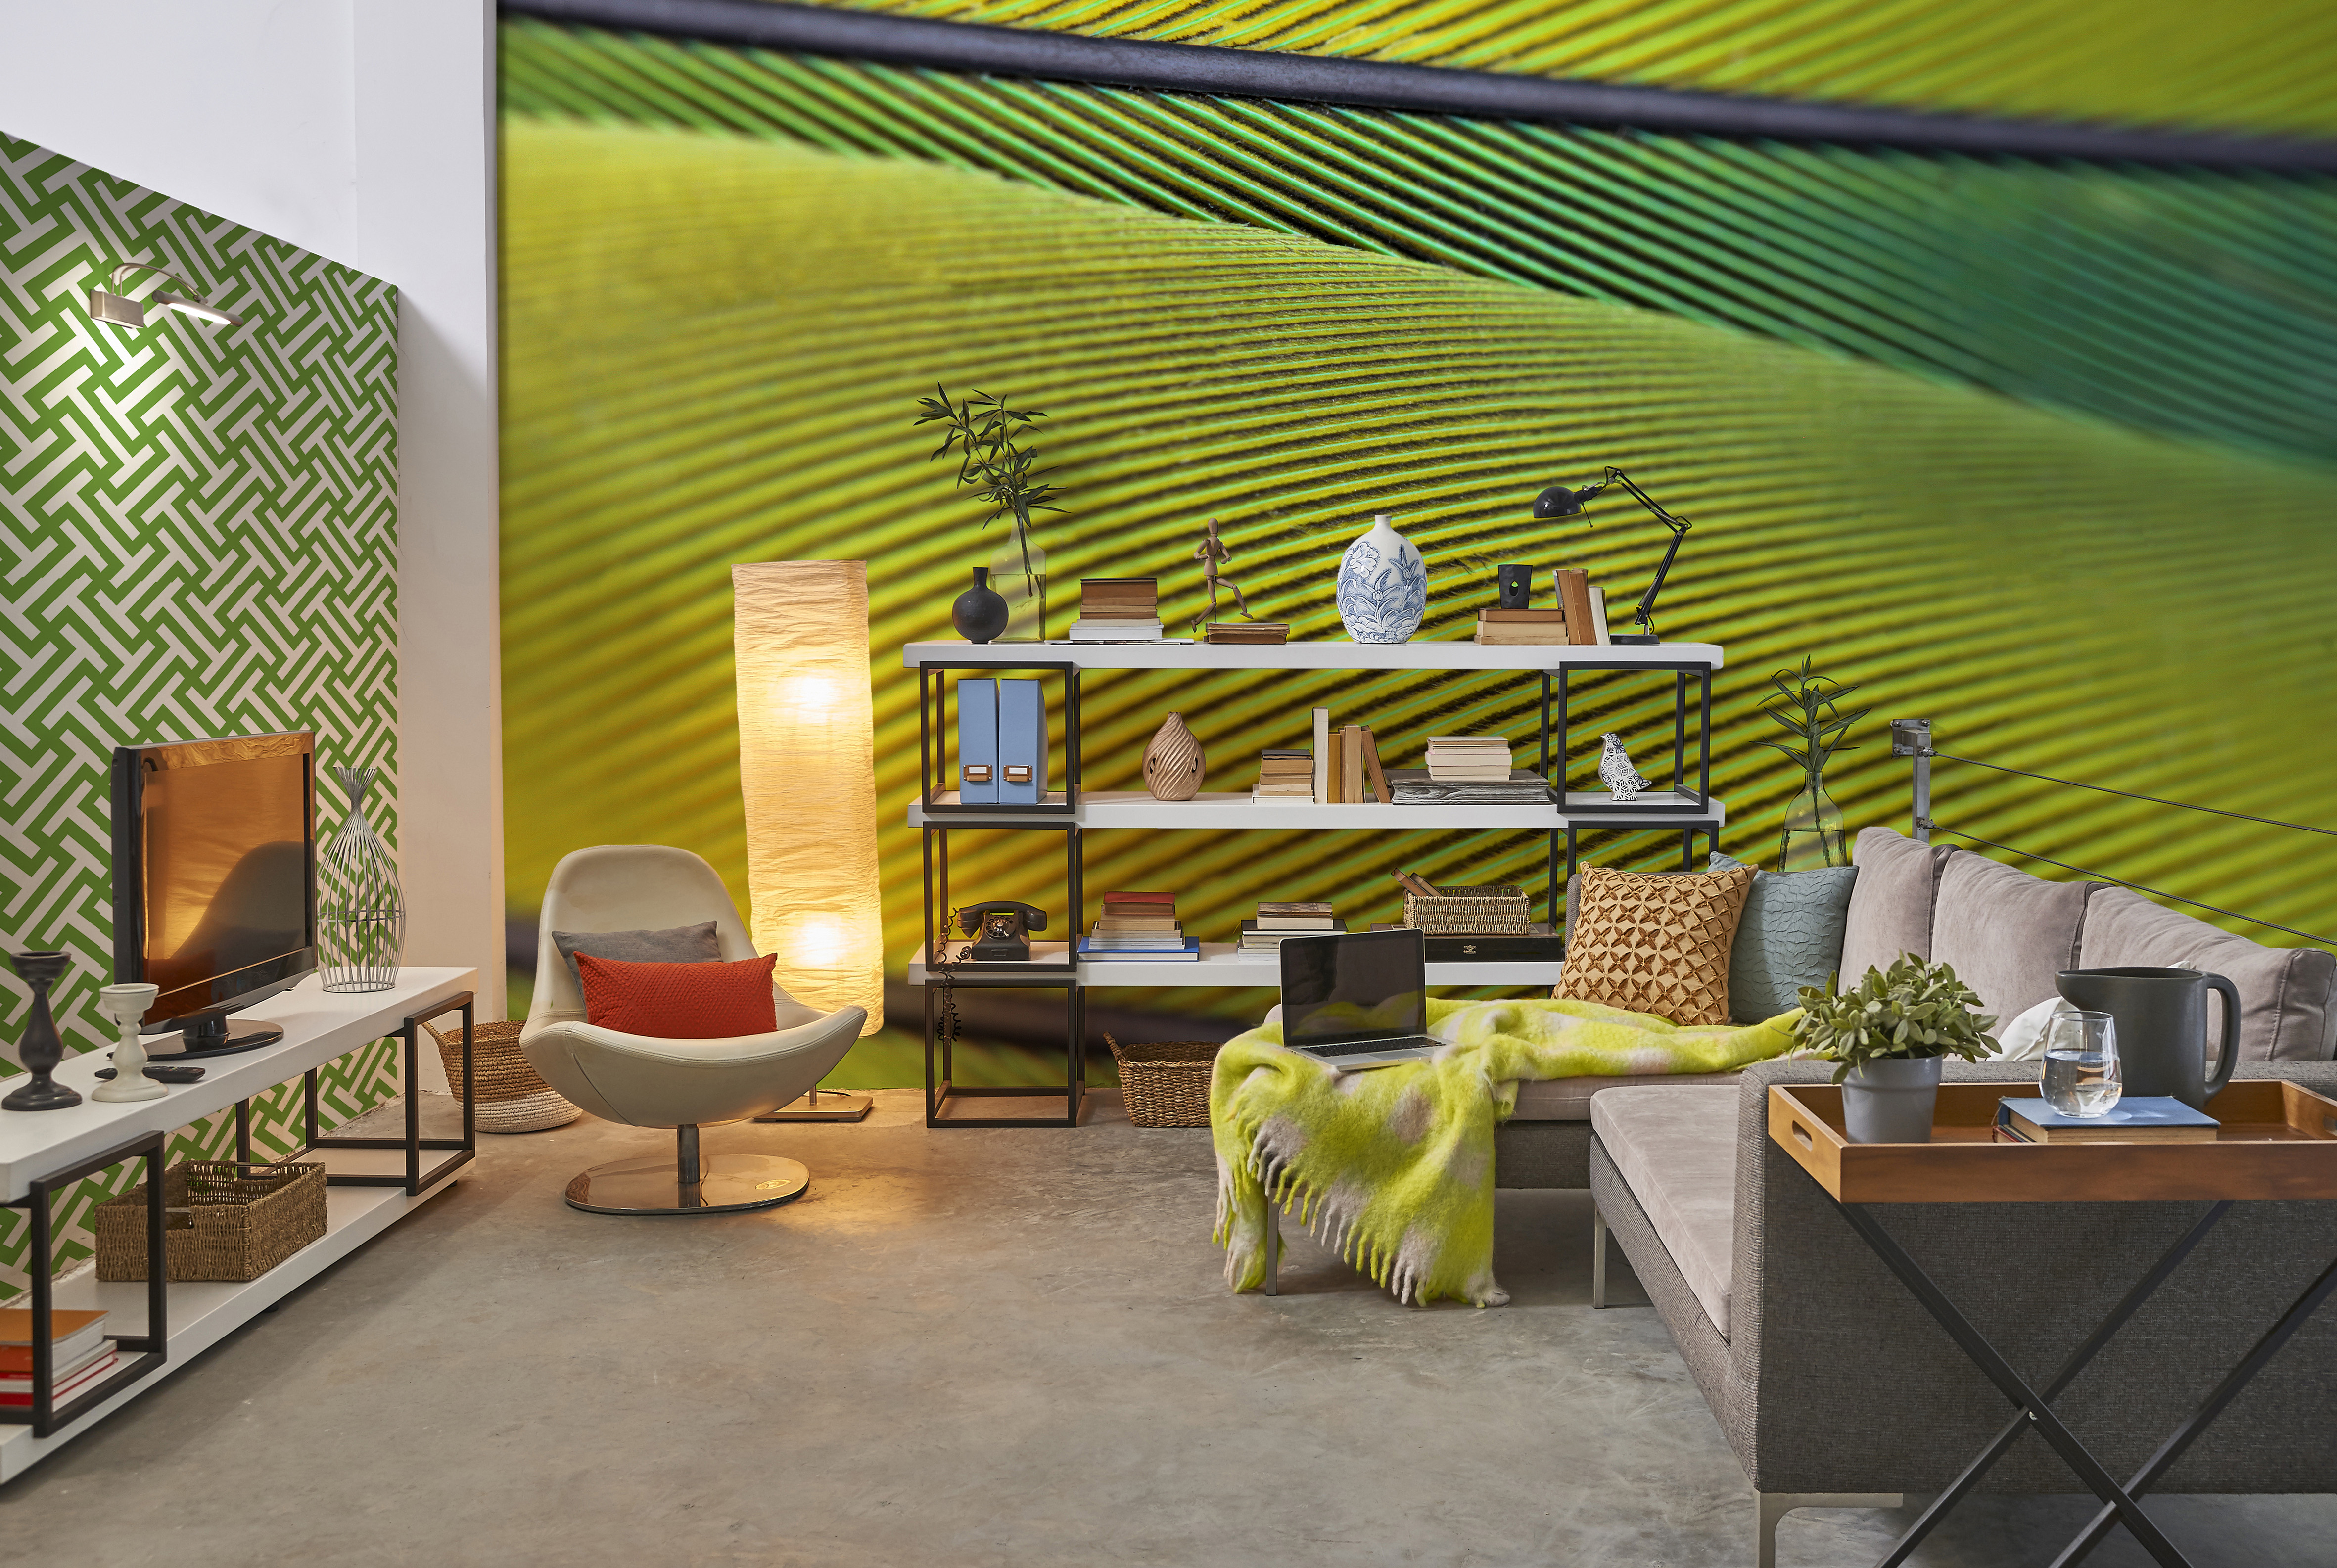 Fields of green • Living room - Eclectic - Textures and patterns - Nature - Wall Murals